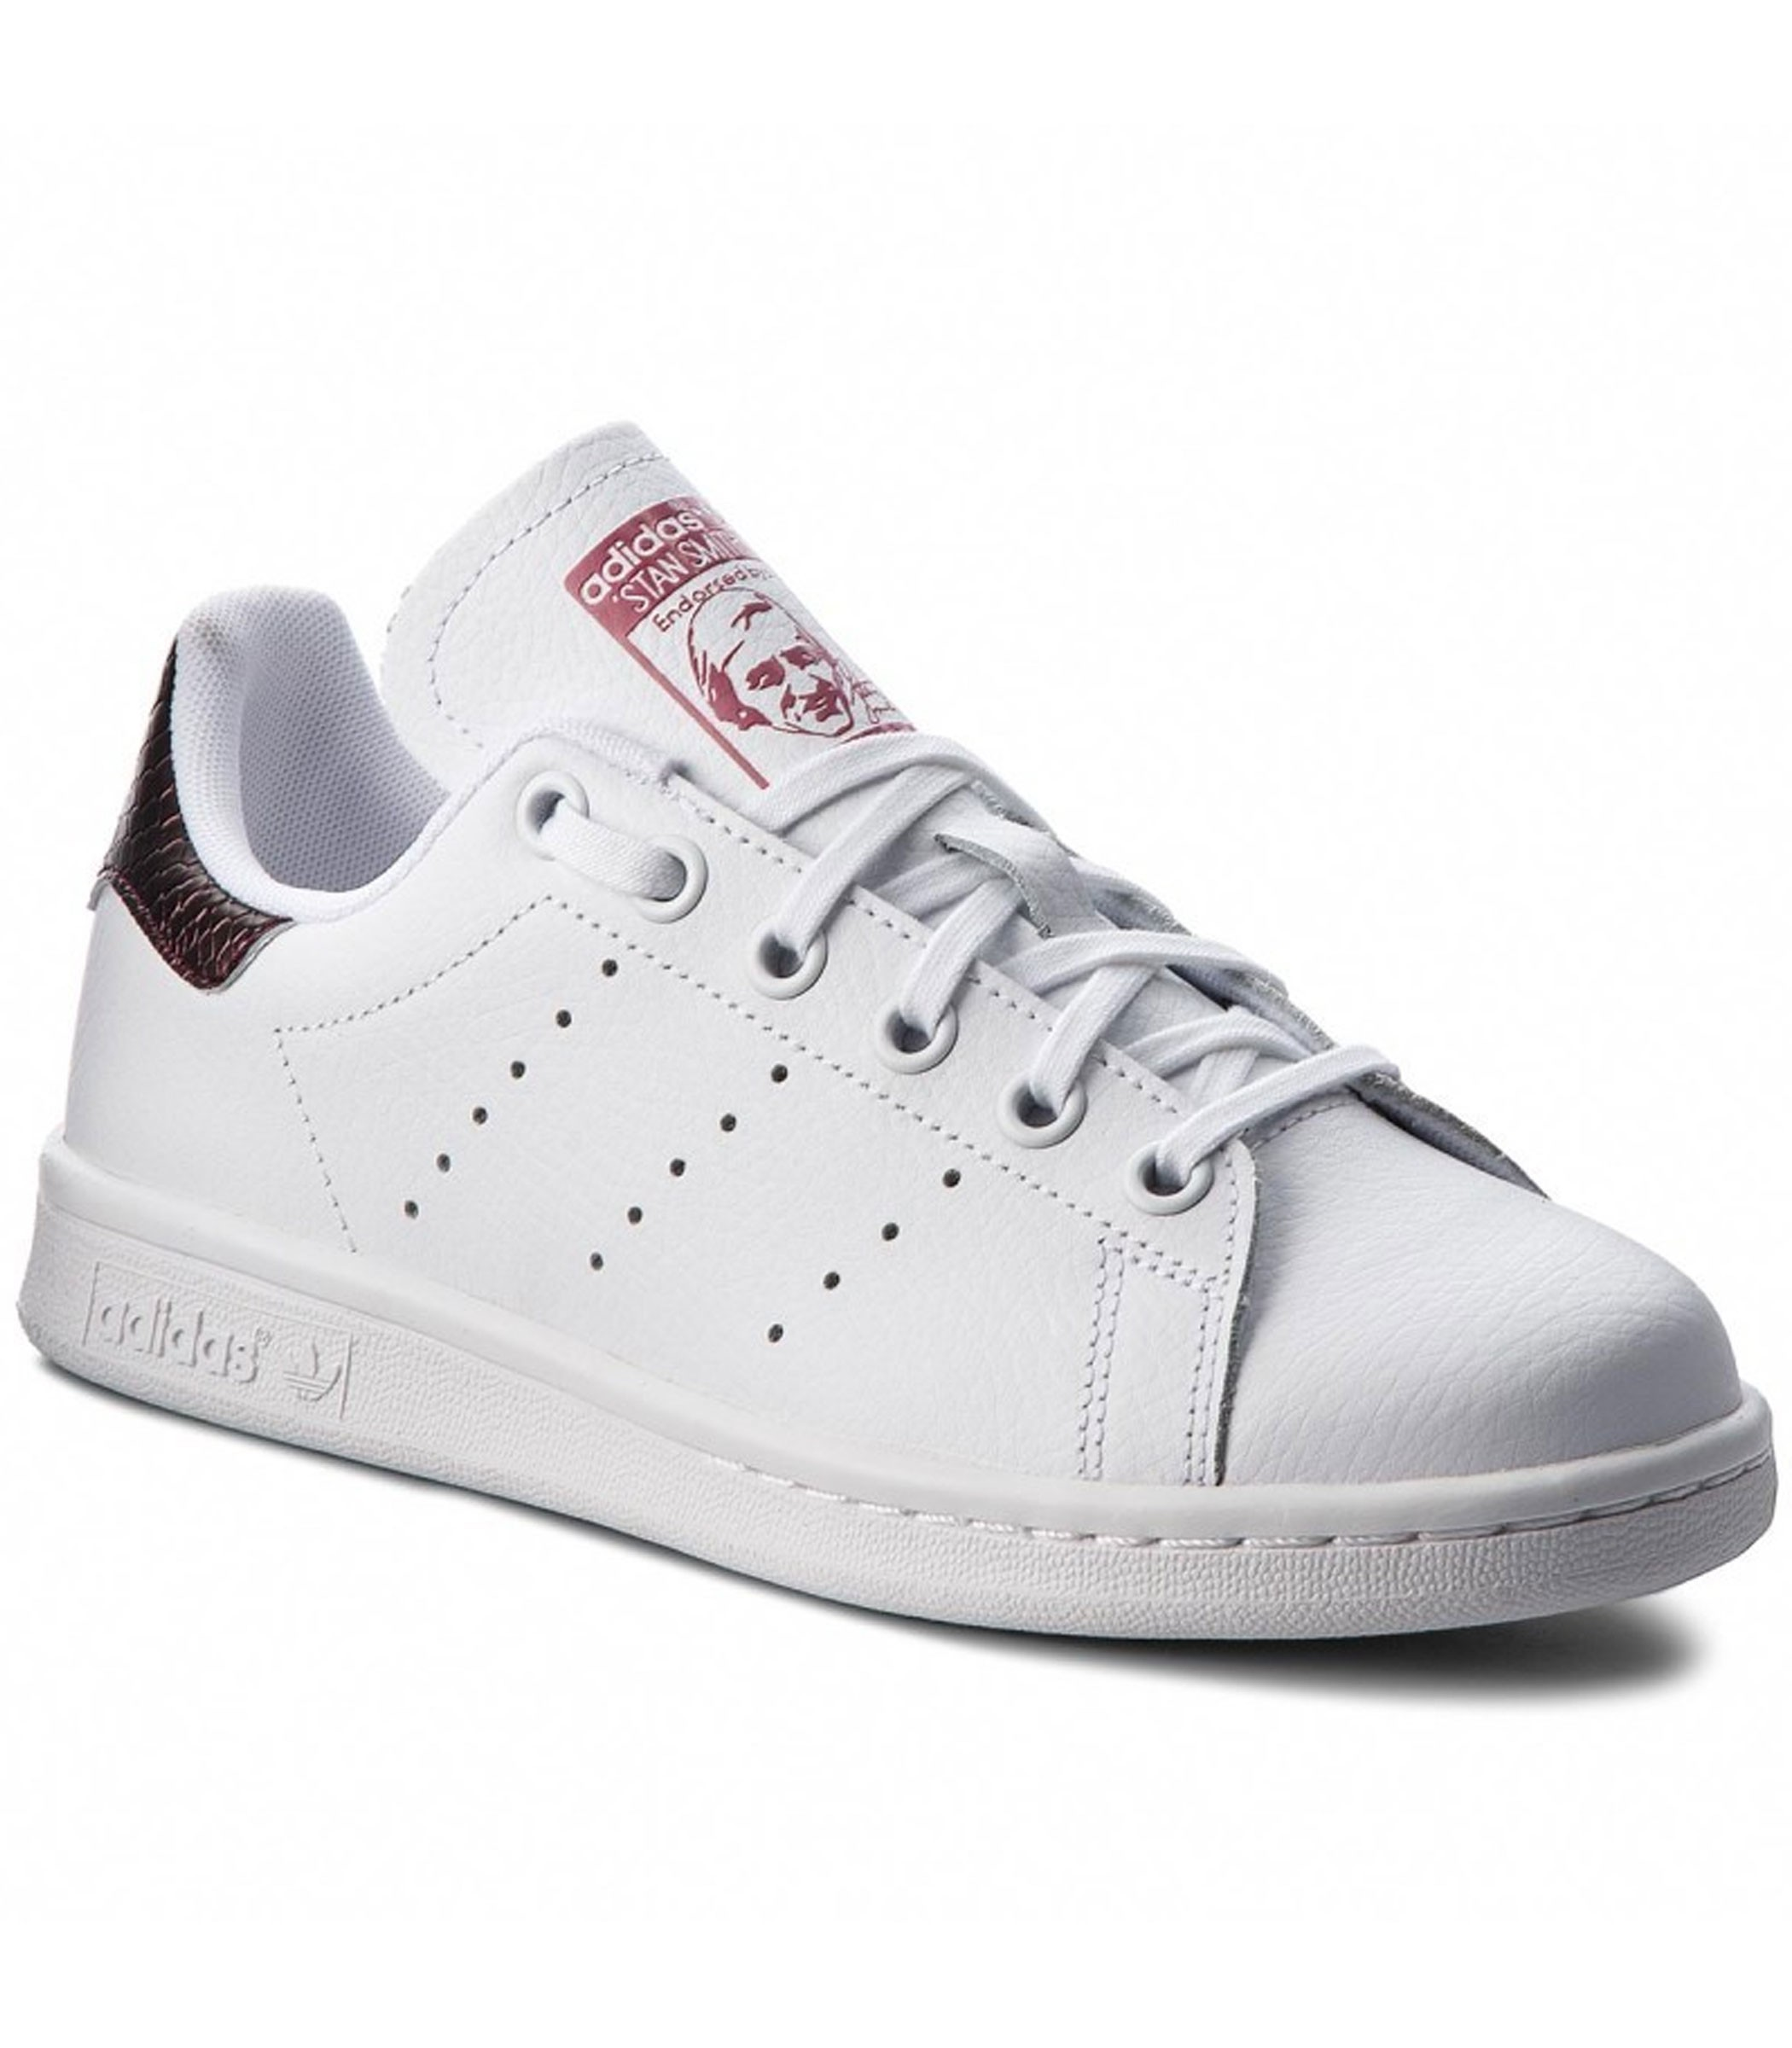 quality design 4cb19 70e54 Scarpe Sneakers Adidas Stan Smith J da ragazza rif. B37186